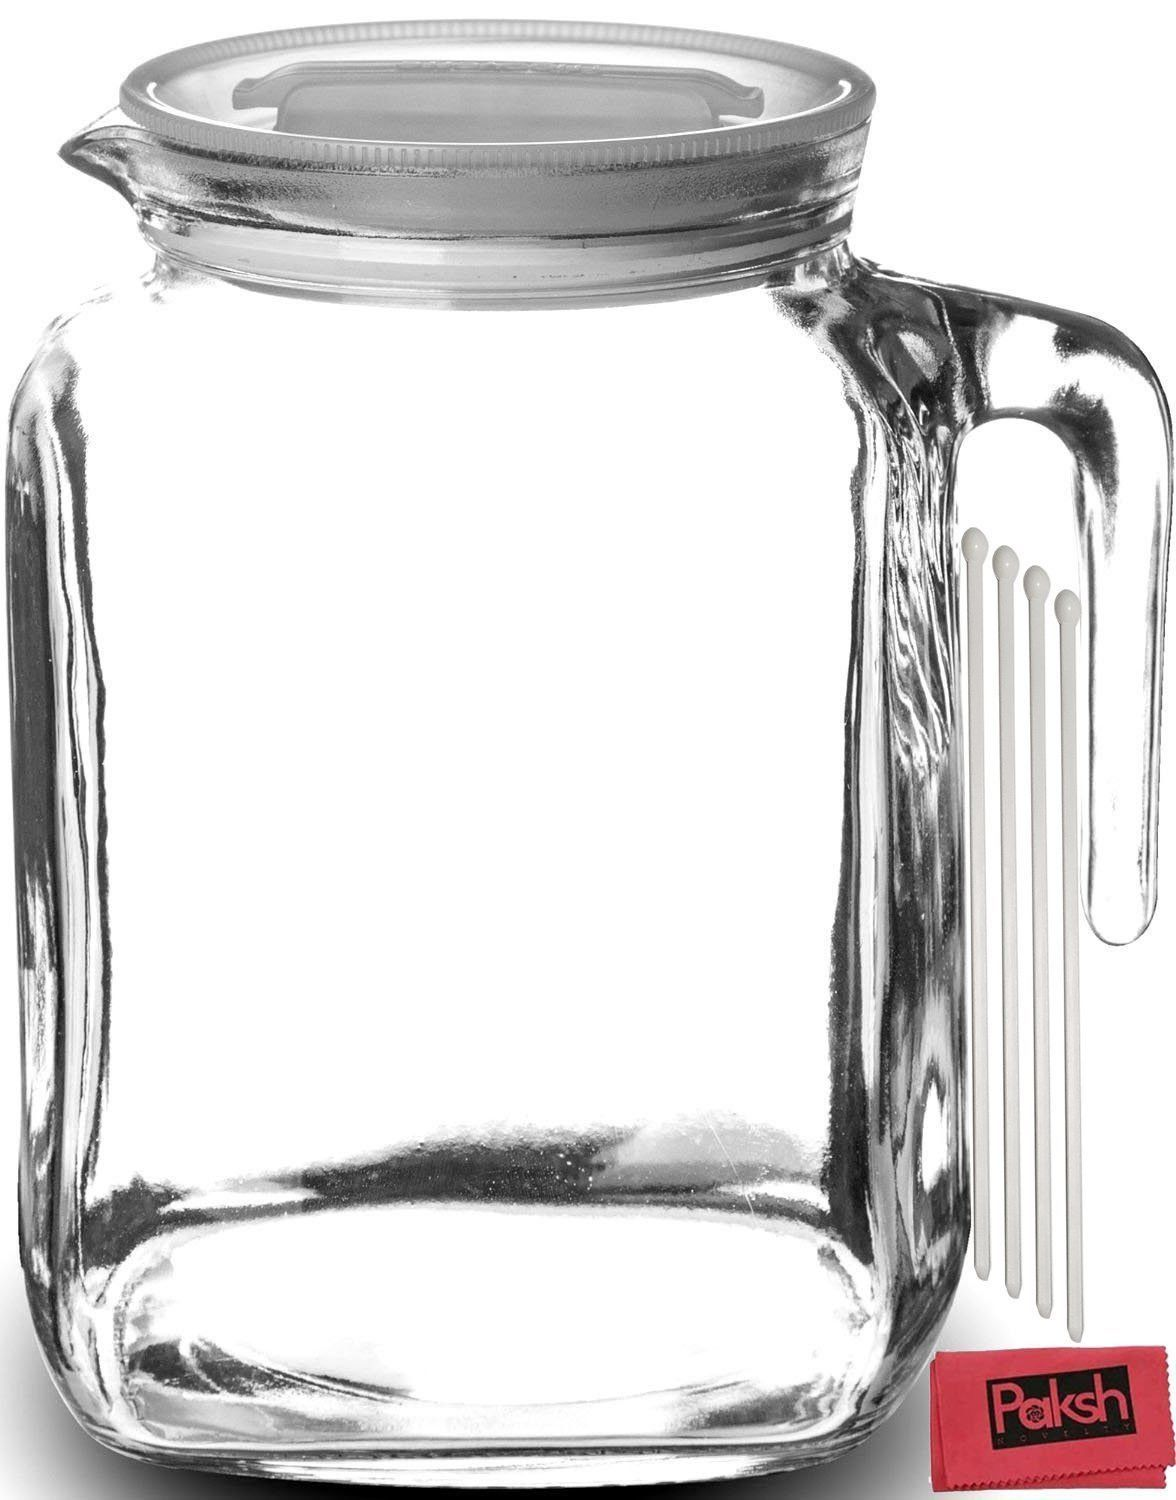 Special Hermetic Seal Glass Pitcher Homemadejuice Iced Tea Or Milk Bottles Bundled Spout Ounce Lid Spout Ounce For Stirrers Cloth Hermetic Seal Glass Pitcher Lid